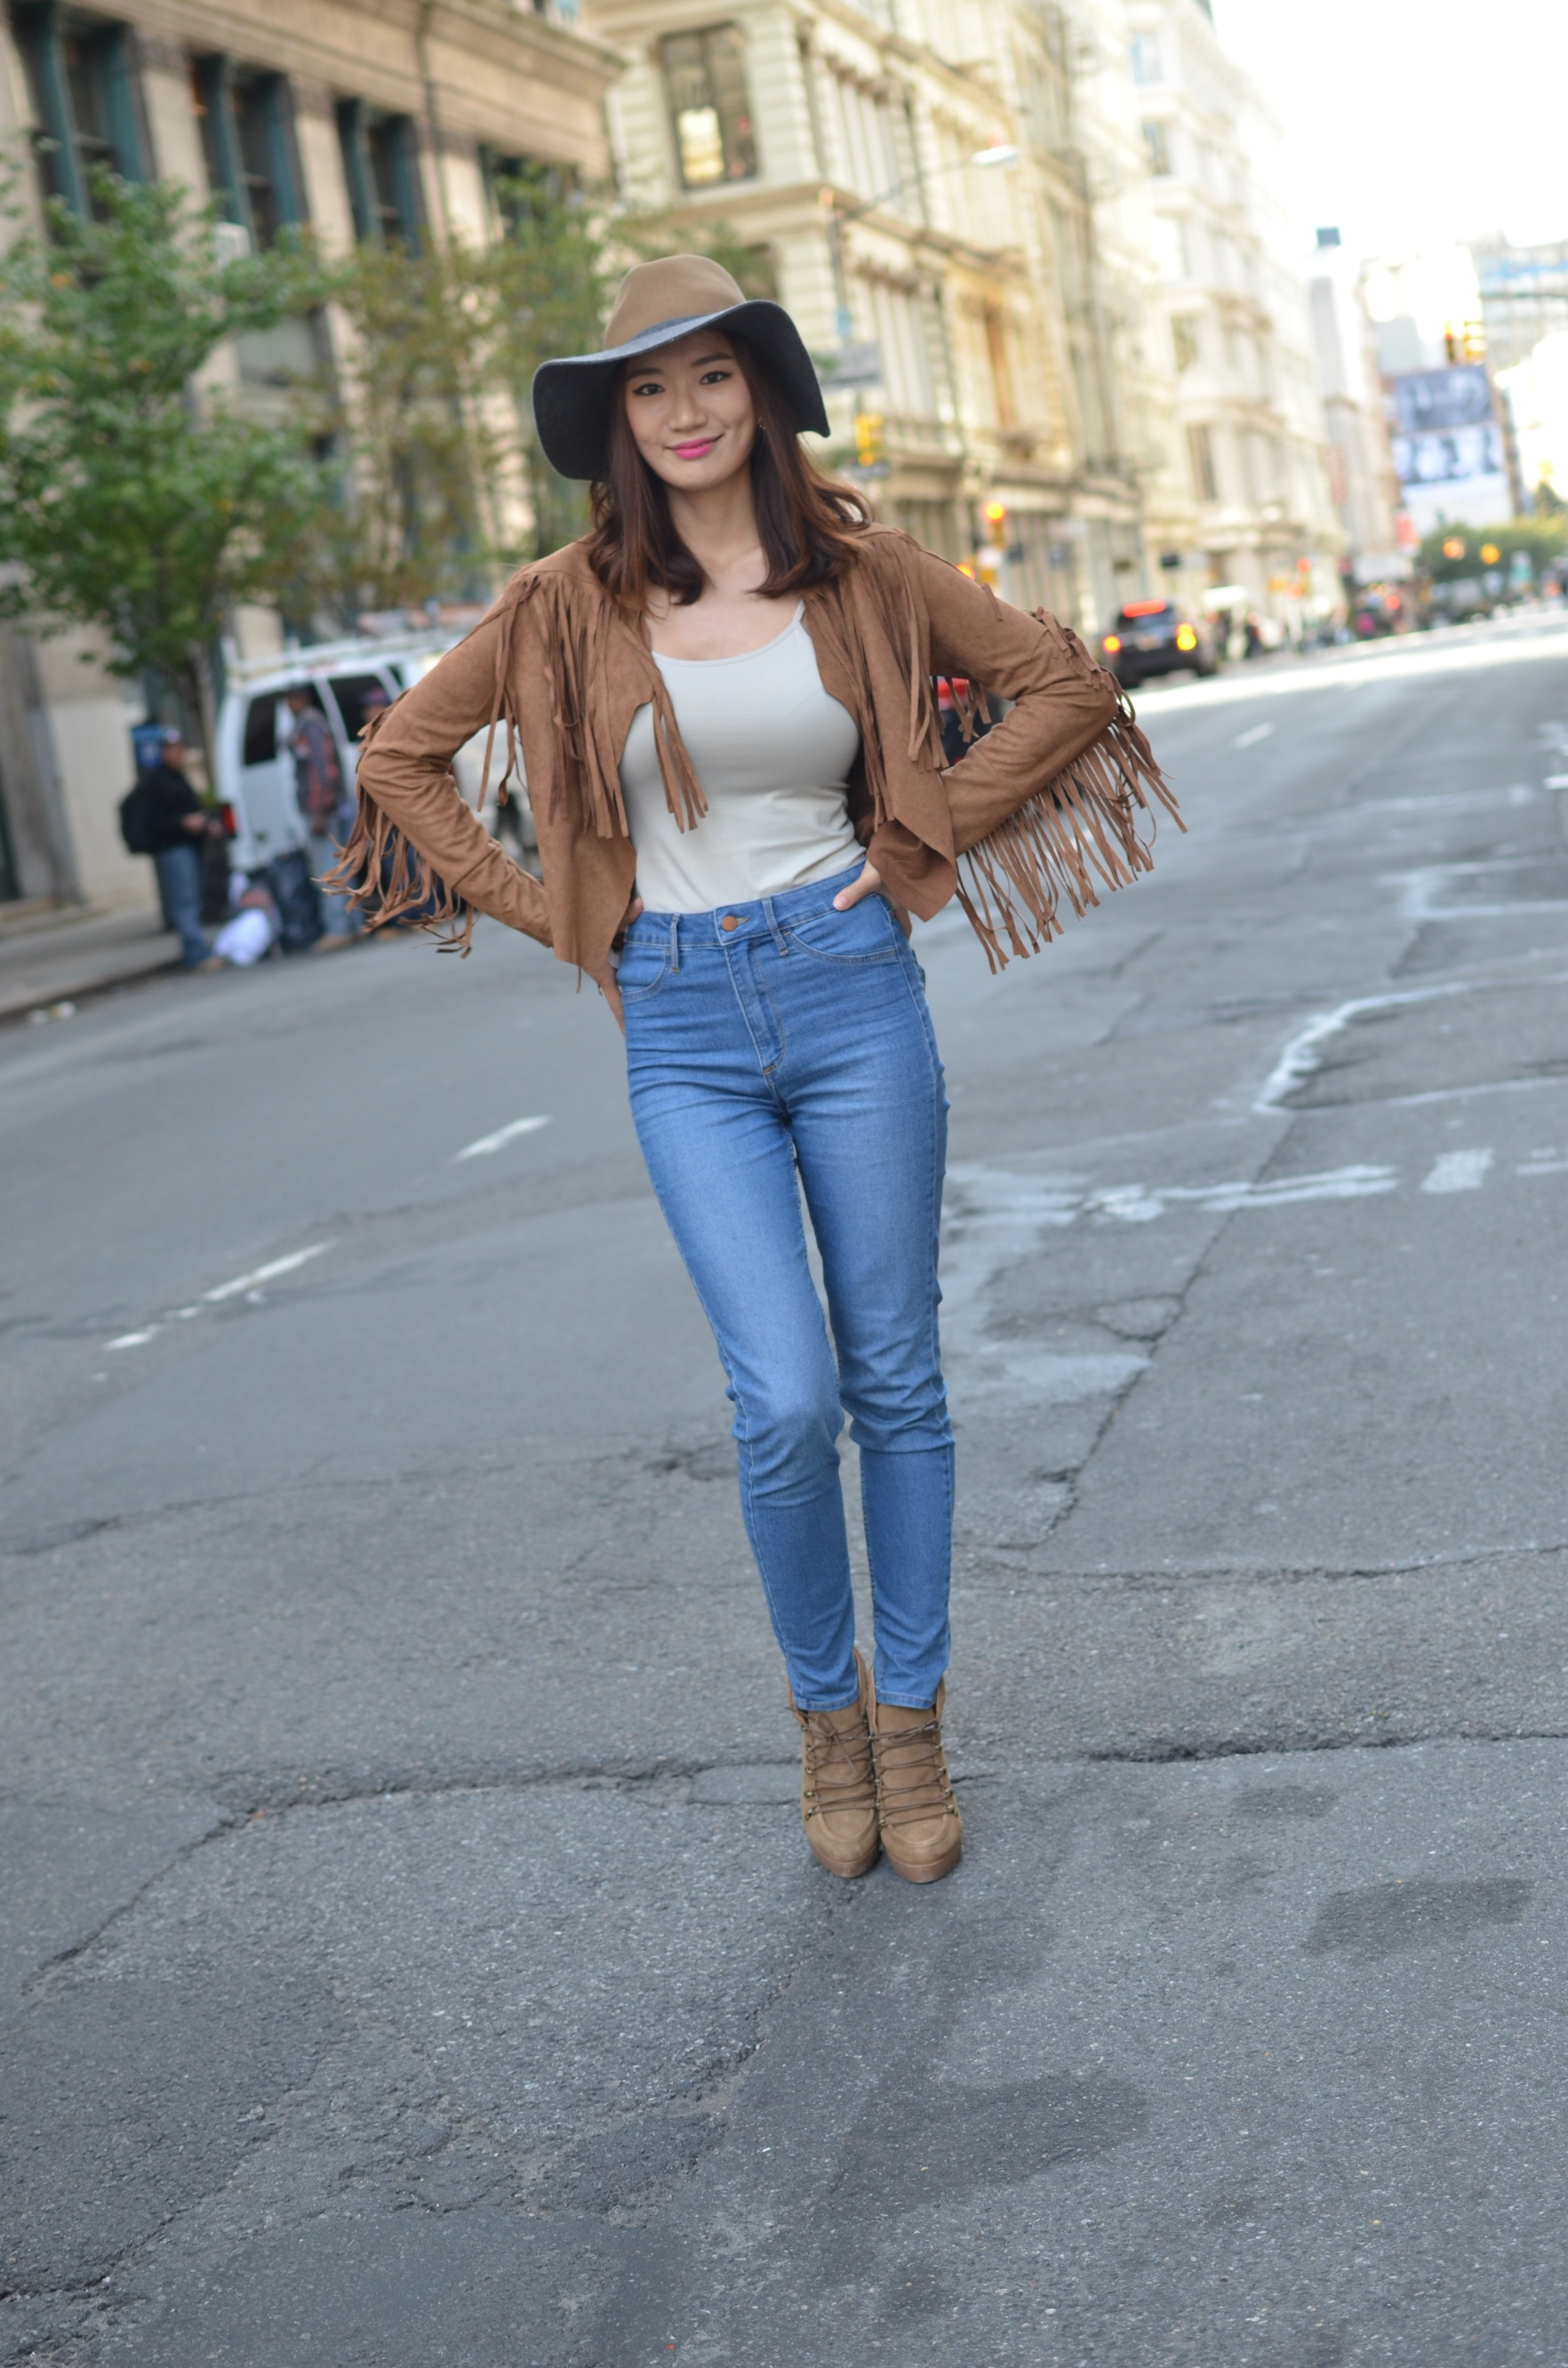 beautiful girl in jeans and fringe jacket